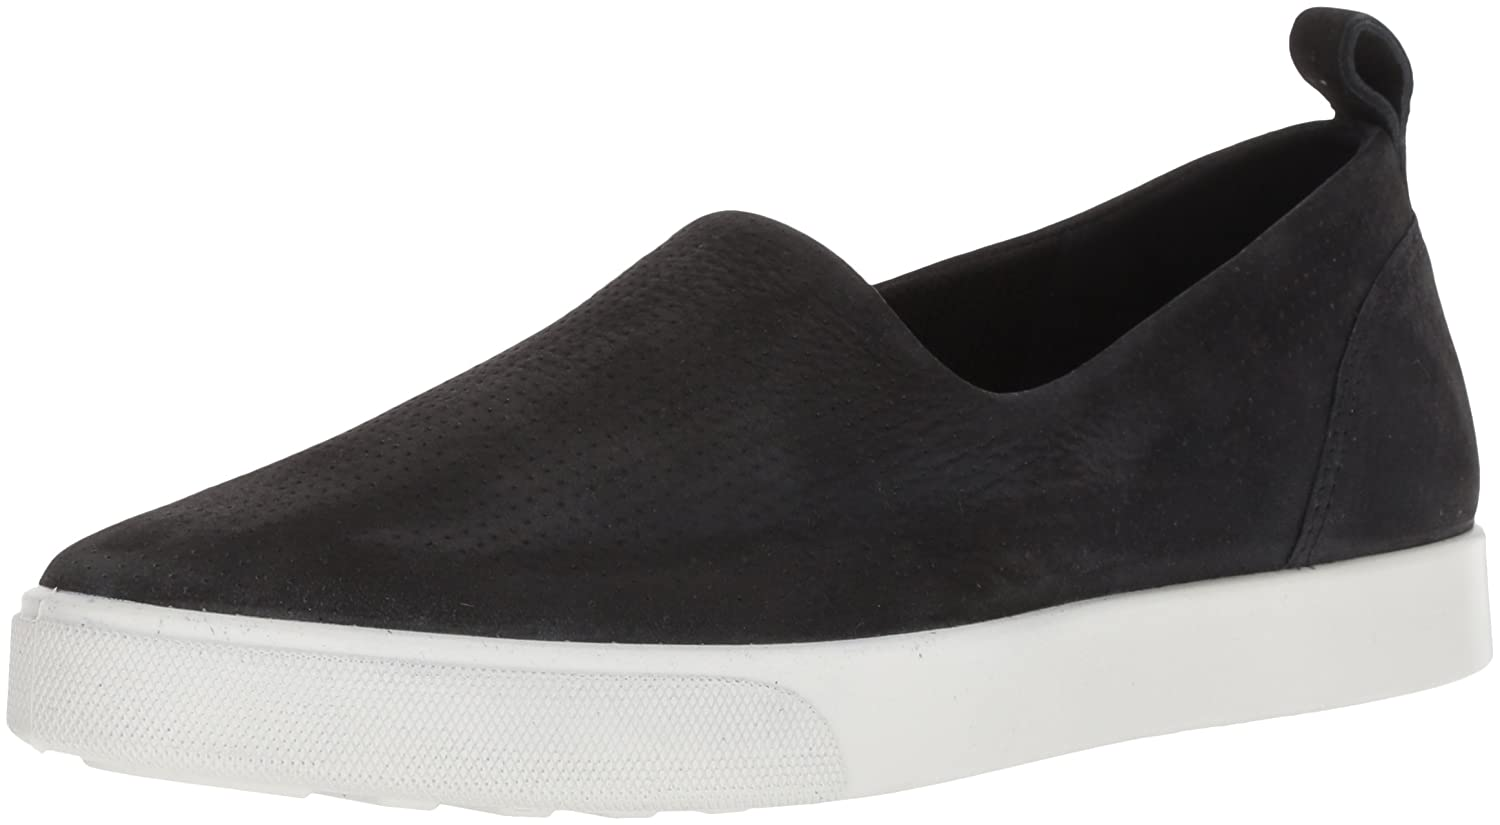 ECCO Women's Gillian Casual Slip on Sneaker B077539YKK 37 M EU (6-6.5 US)|Black